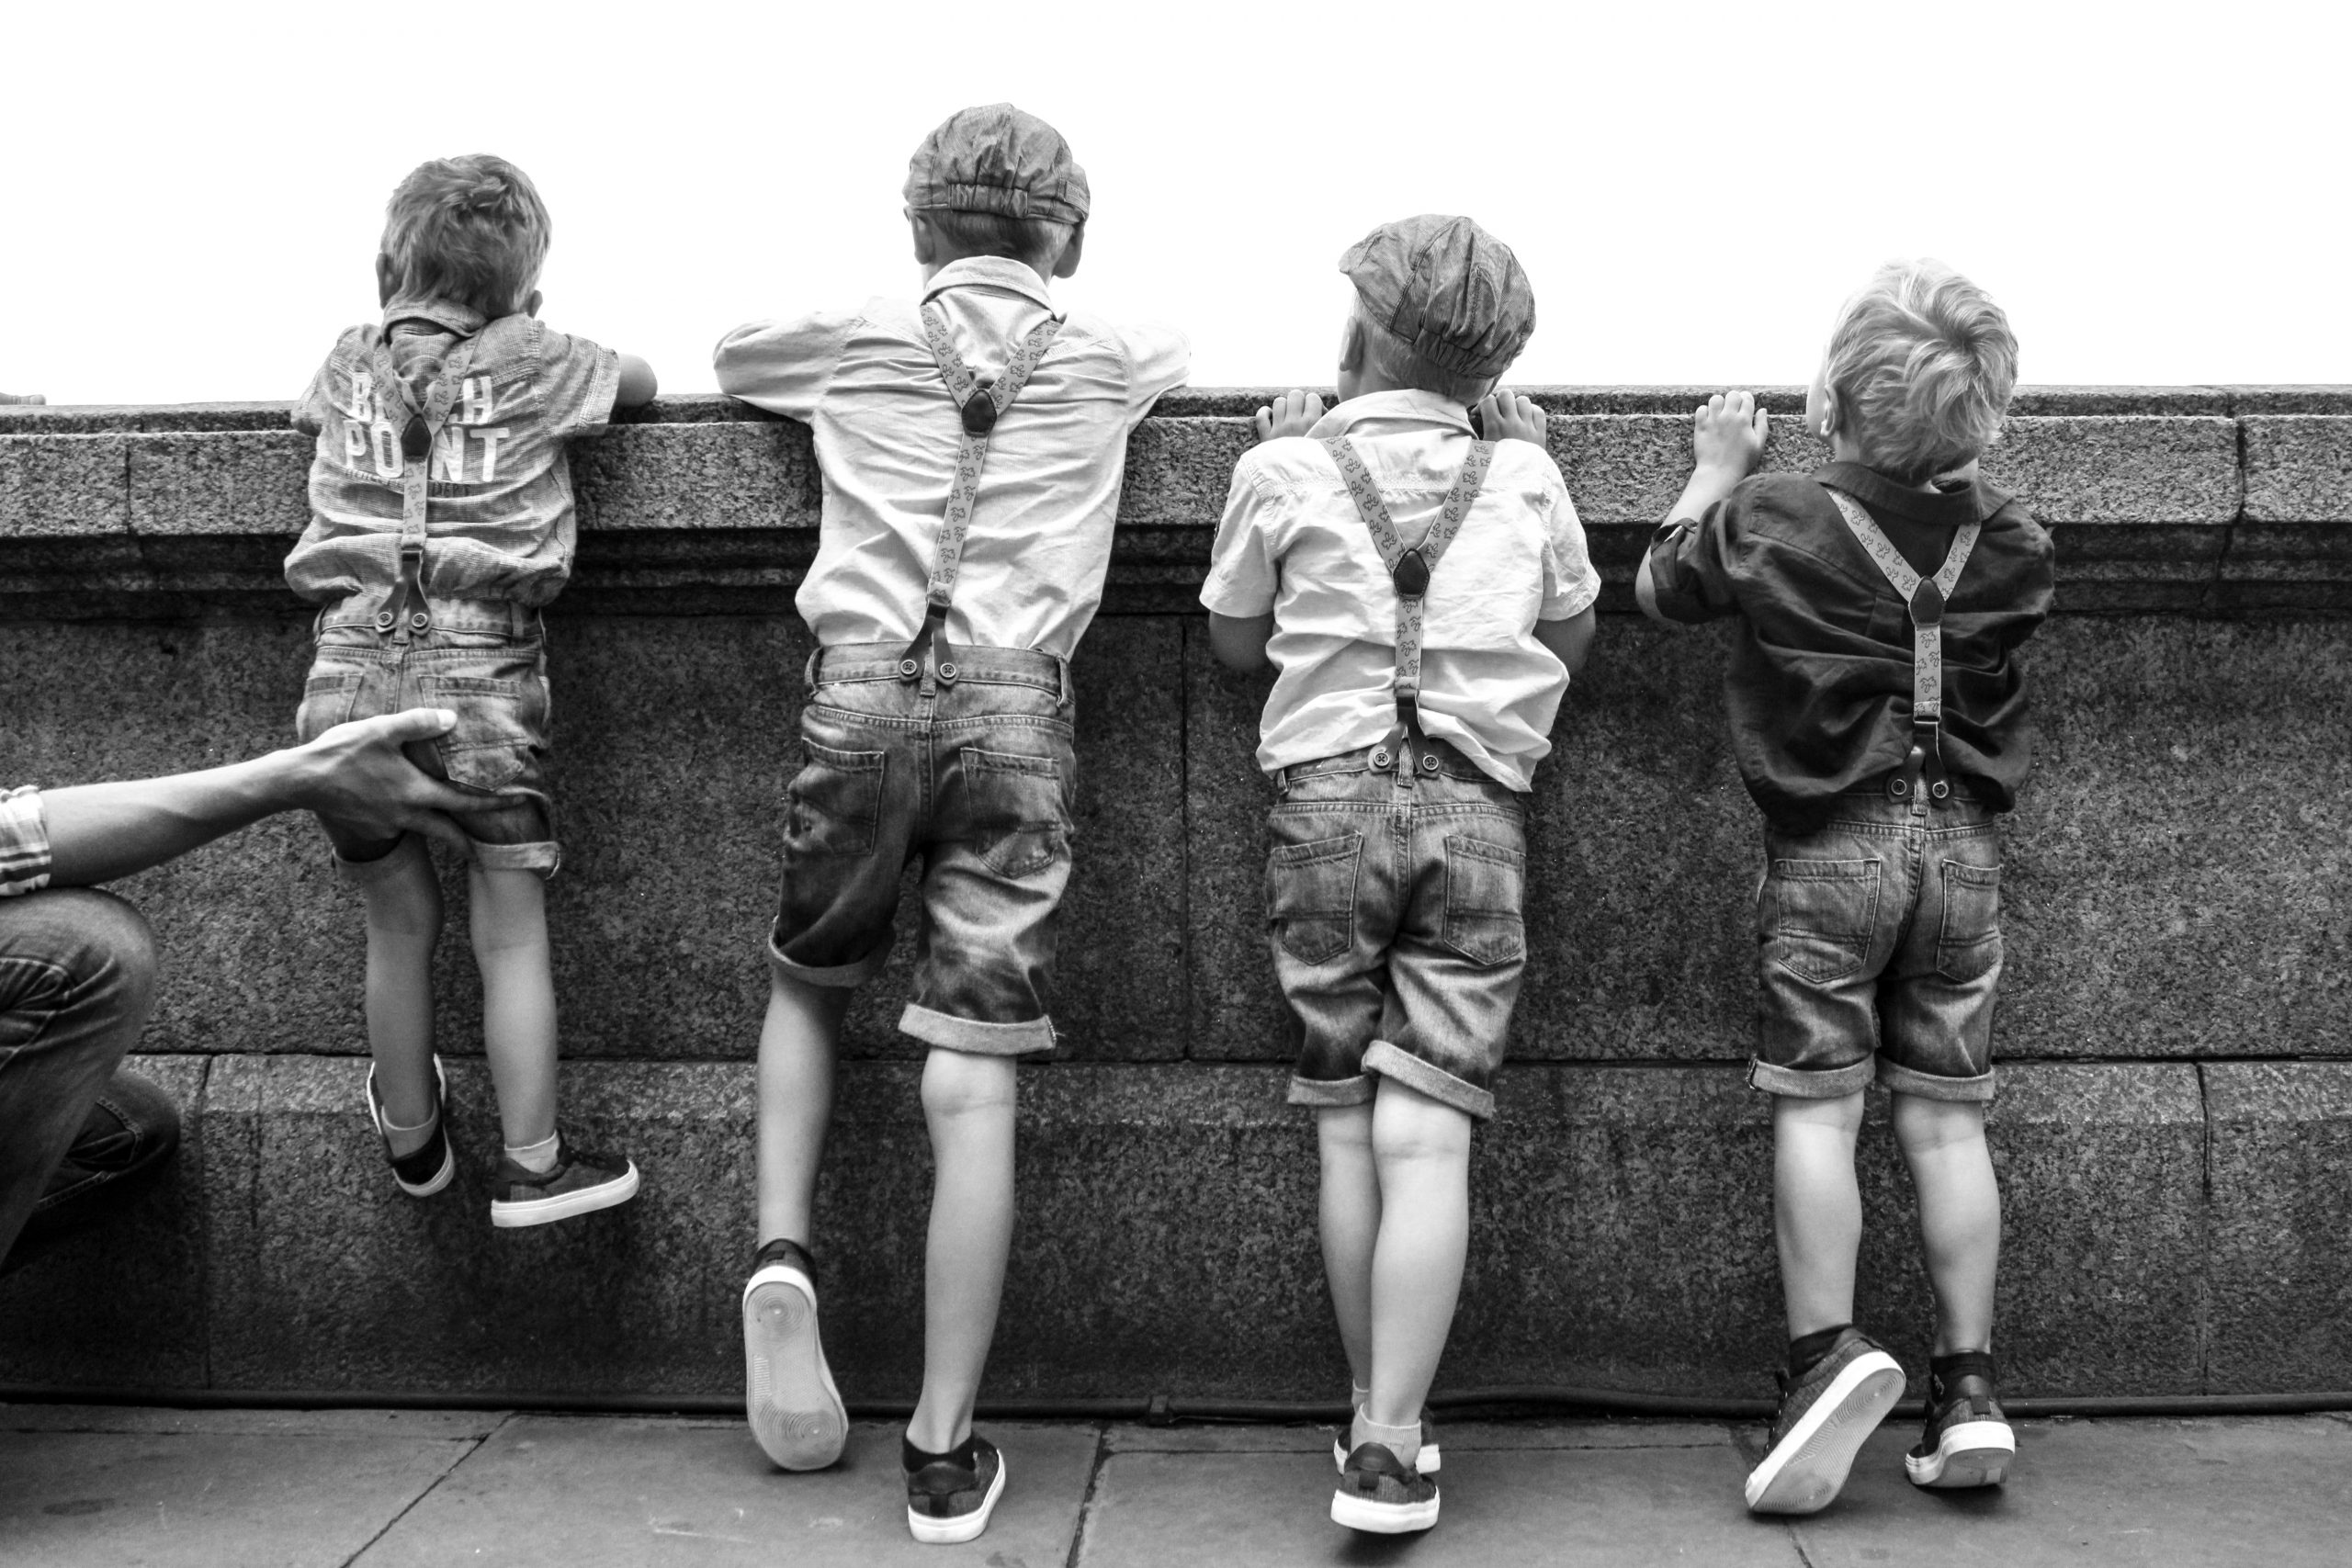 4 Brothers looking over a wall in London